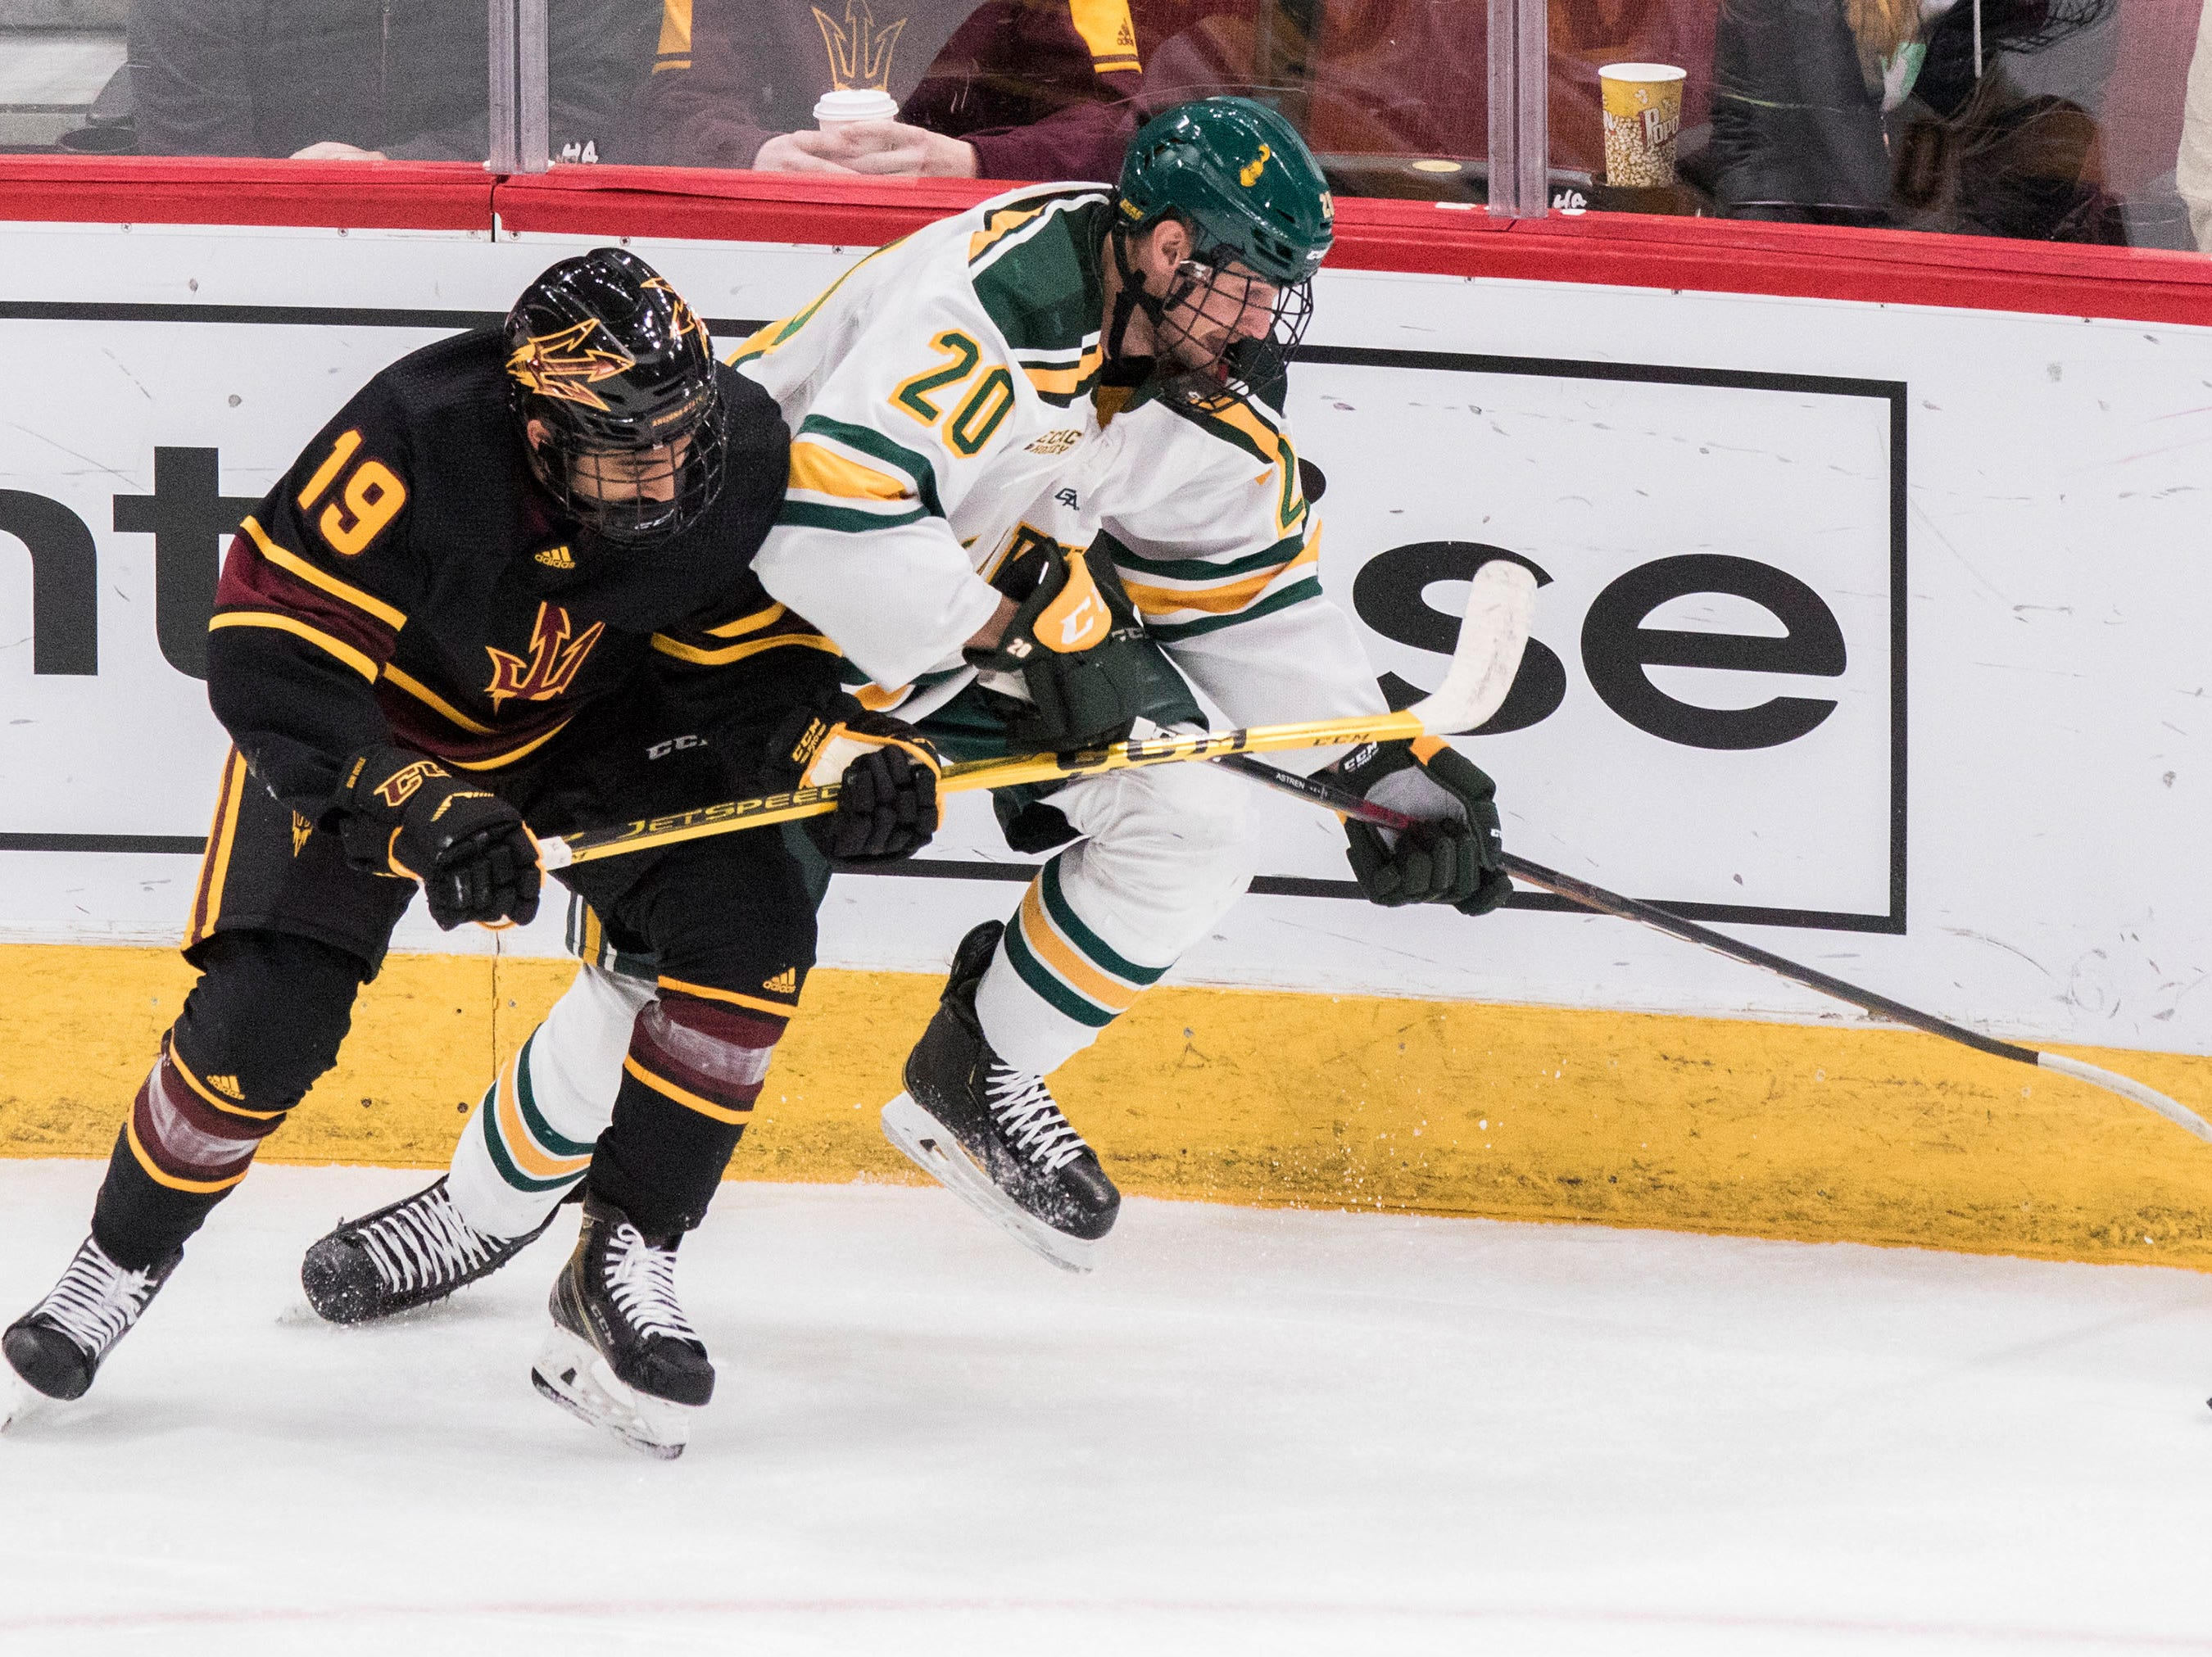 Arizona State University's Jordan Sandhu (19) fights for the puck with Clarkson's Jere Astren (20) during the first period of their game in the 2018 Desert Hockey Classic in Glendale, Friday, Dec. 28, 2018.